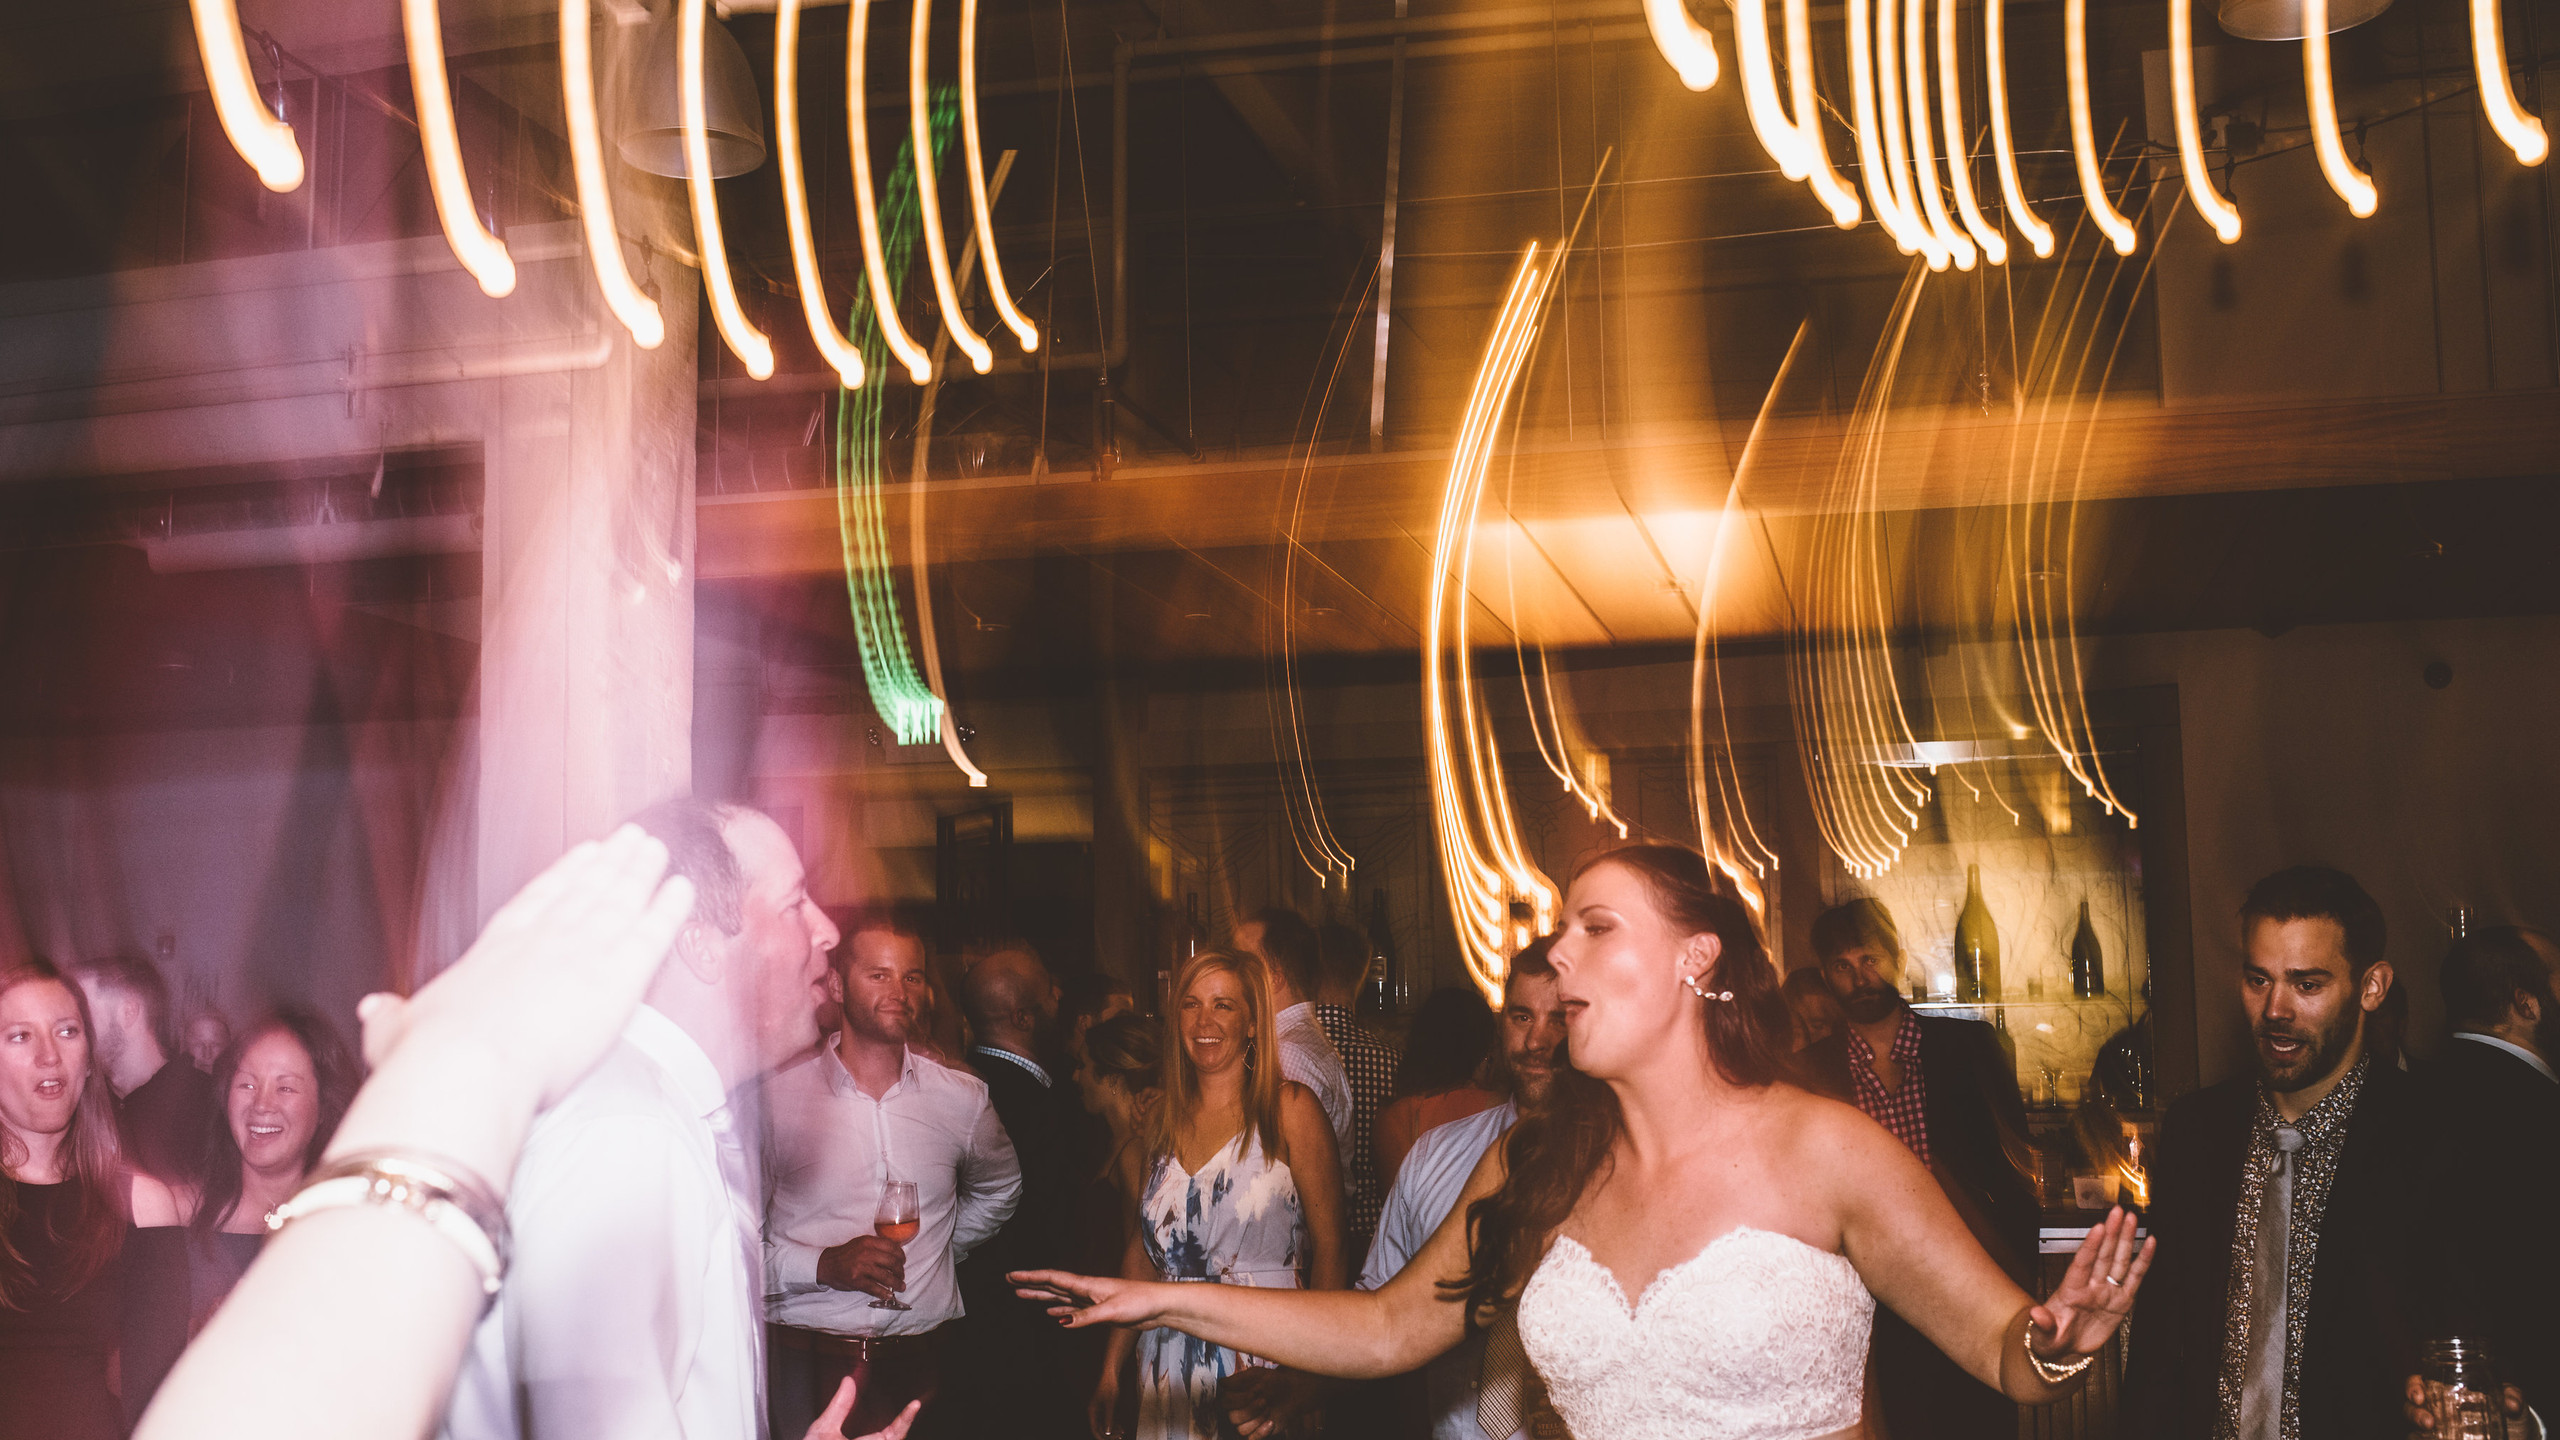 Wedding ceremony and reception at the Foundry in Seattle.  Photo by Aga Kownacka Photography.